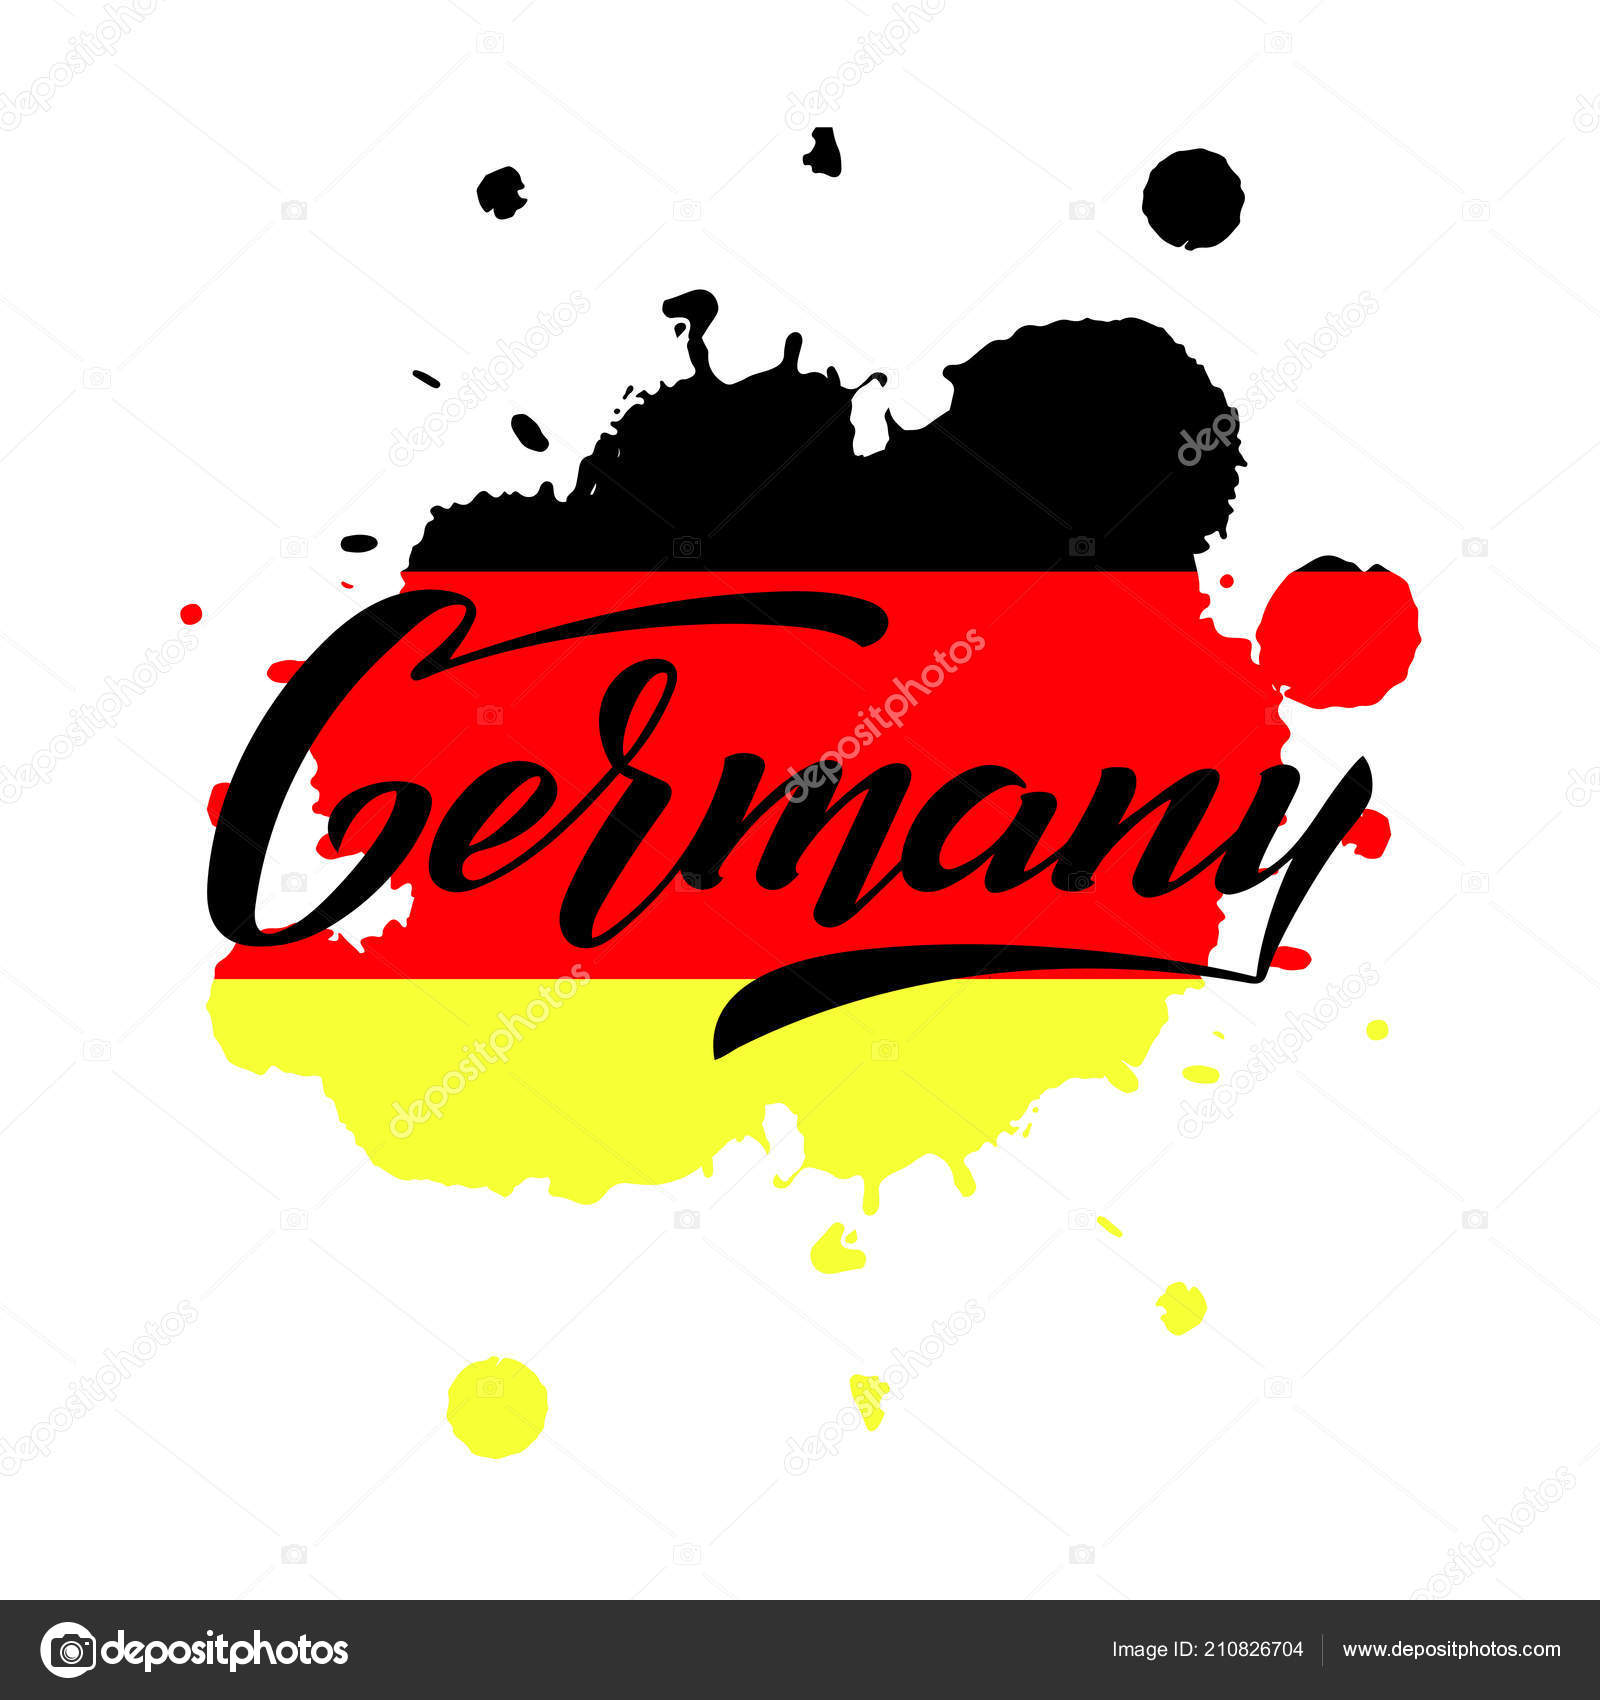 Image result for germany name